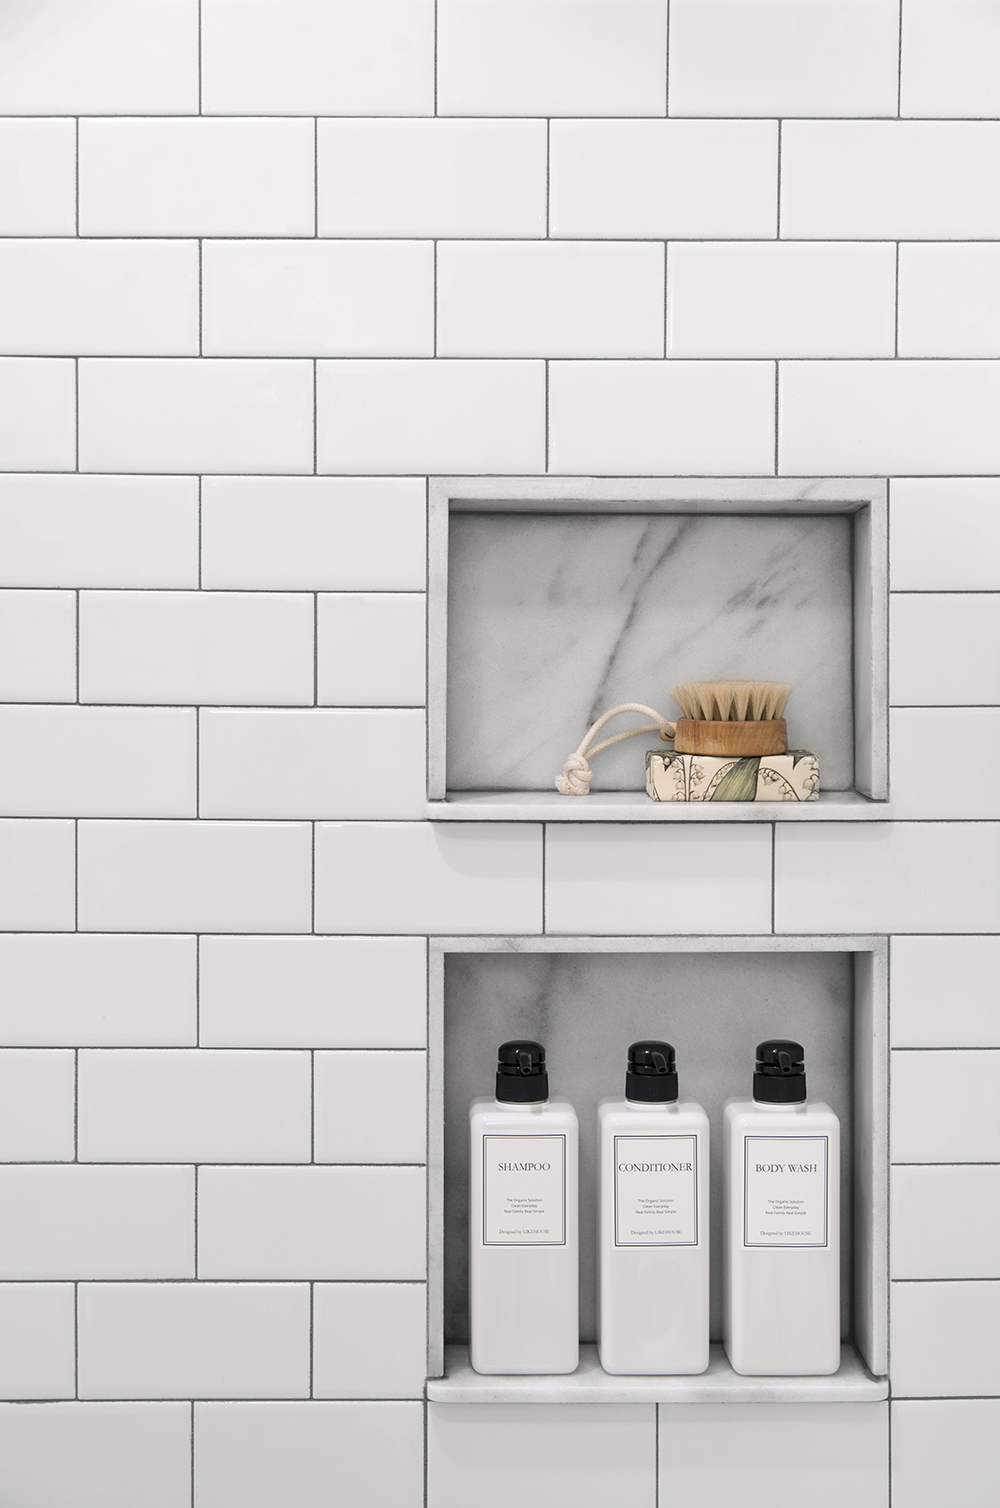 Subway Tile Shower Niche.Marble Shower Niche Surrounded By Subway Tile Room For Tuesday